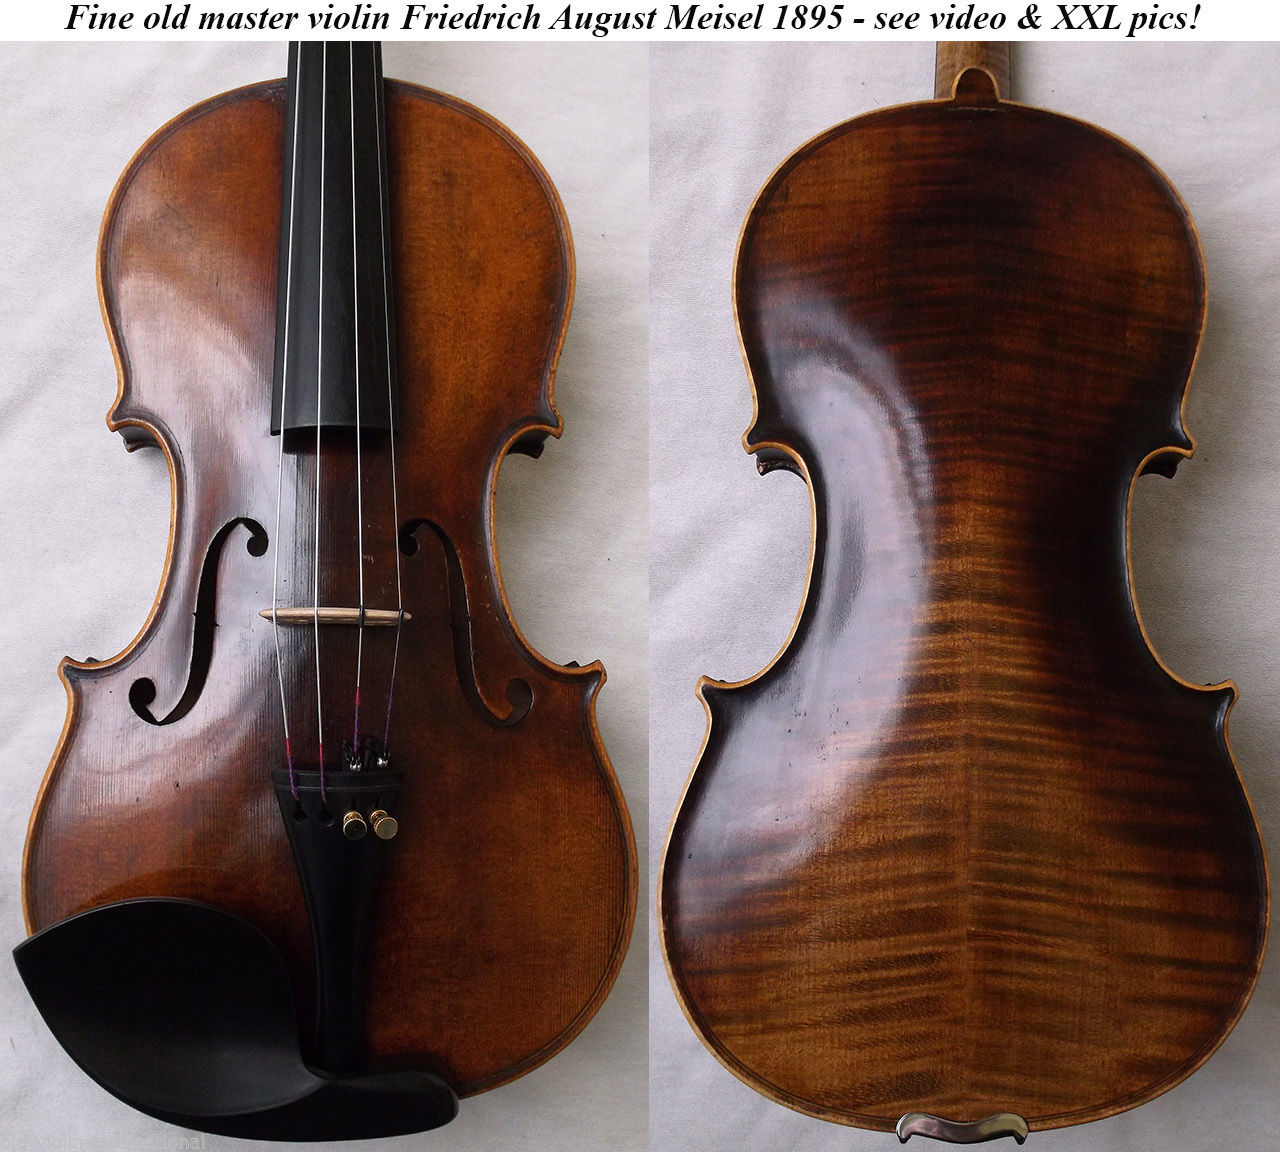 friedrich august meisel violin